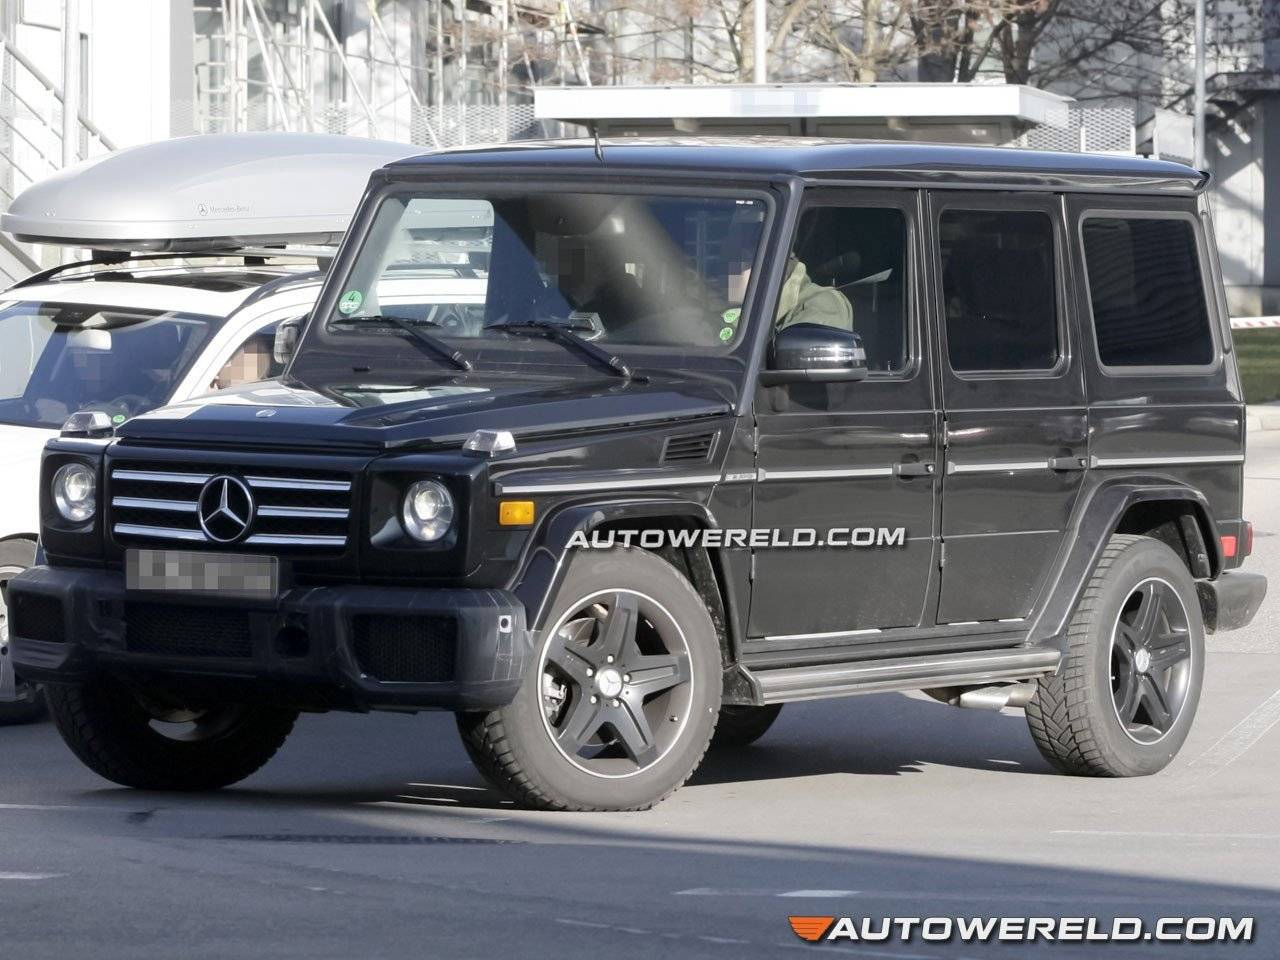 amg v12 voor mercedes g klasse g 65 amg spyshots. Black Bedroom Furniture Sets. Home Design Ideas